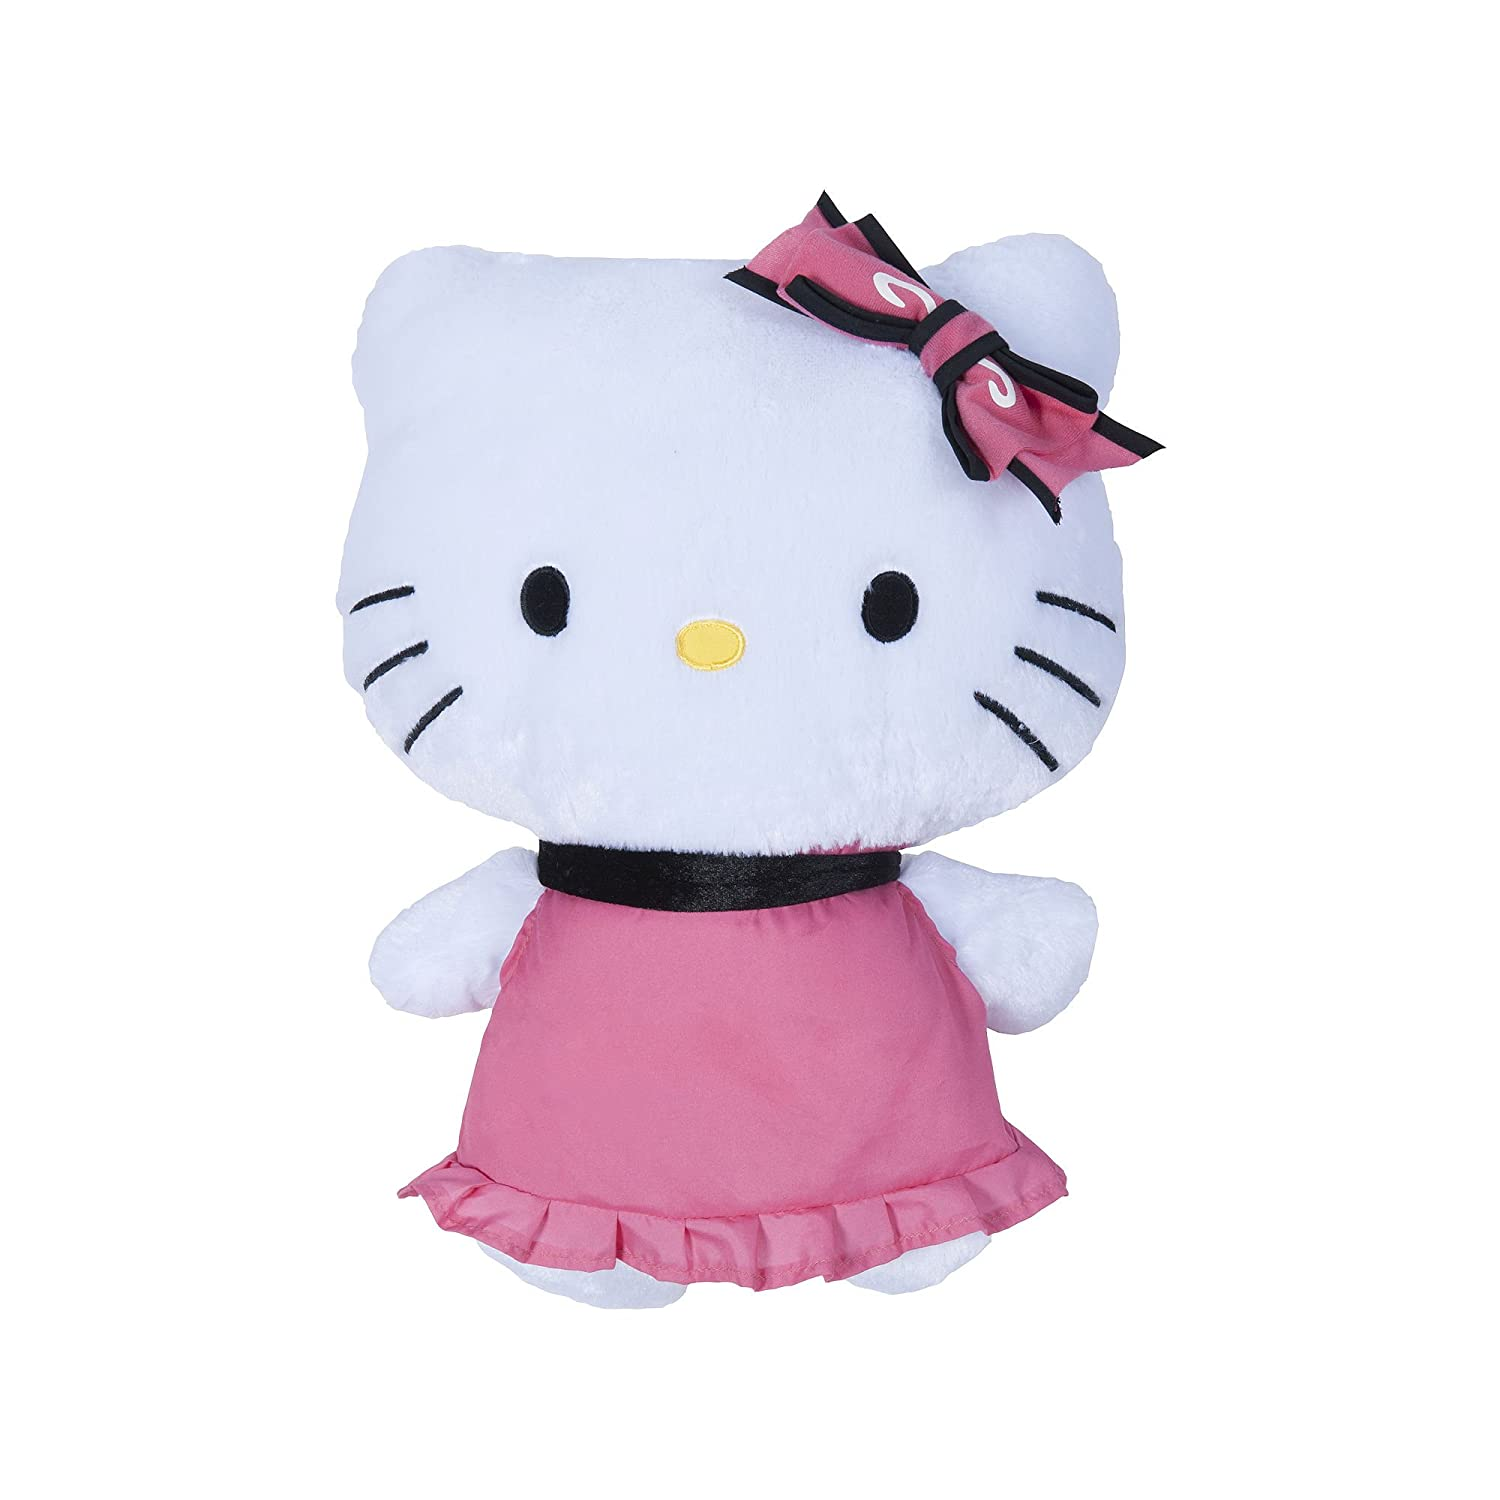 Hello Kitty Free Time Decorative Pillow, Multi, Girls by Hello Kitty   B00BH0N61W